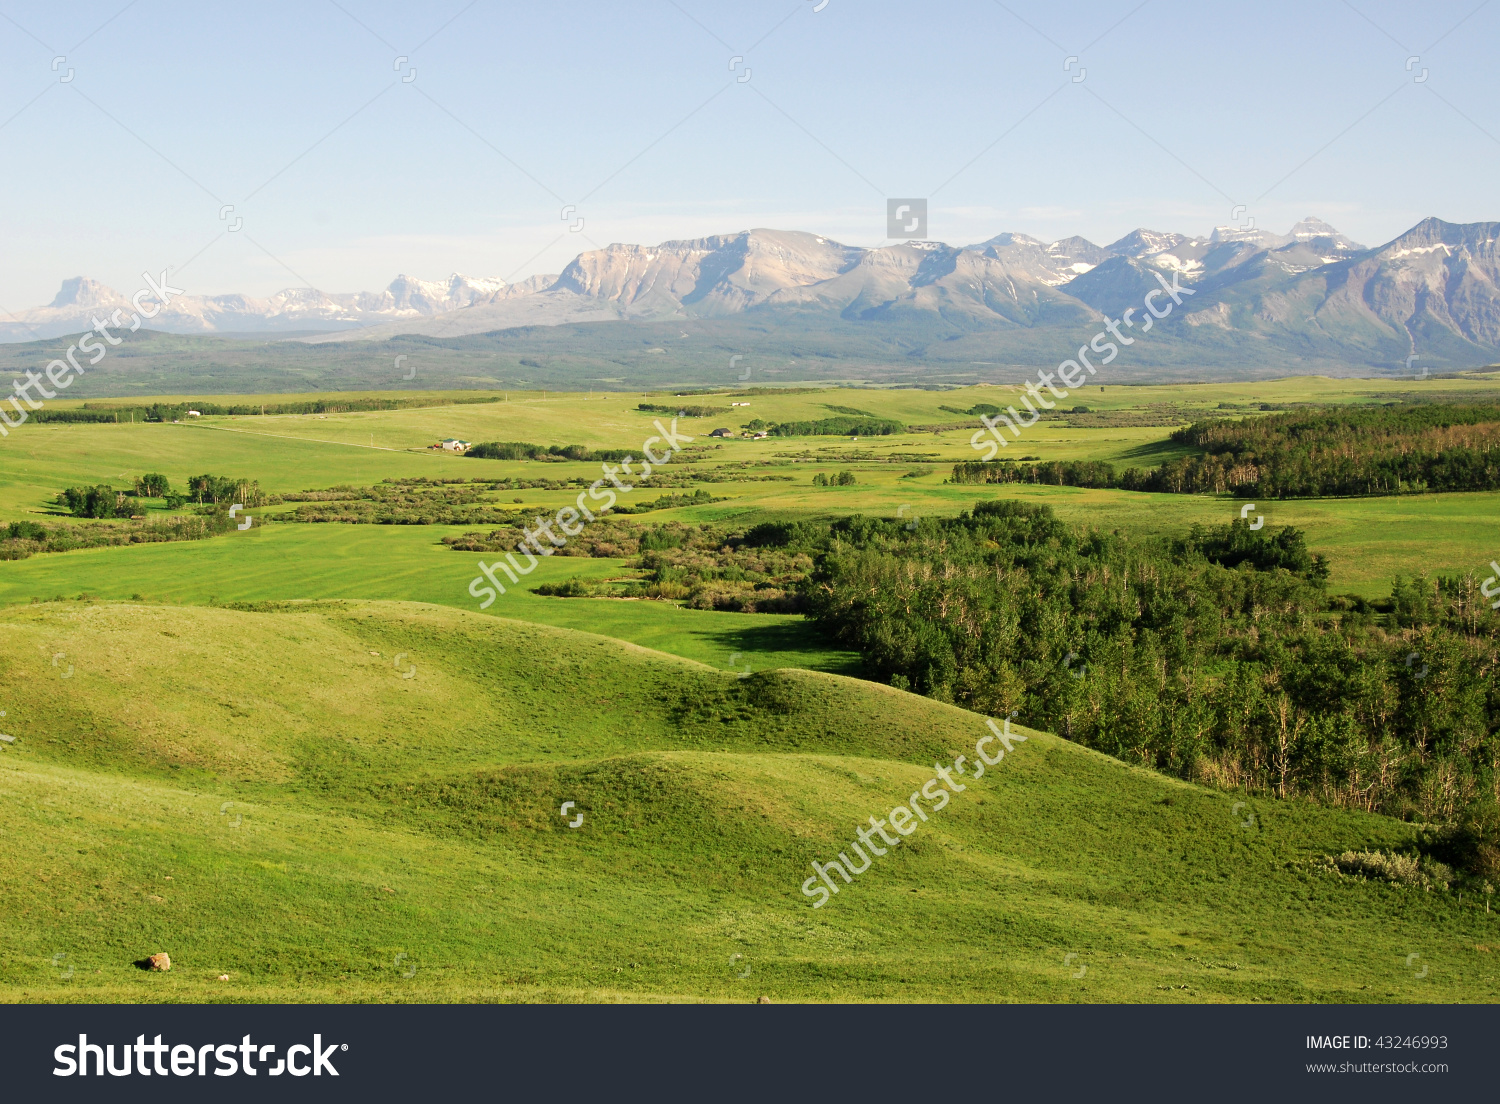 Summer View Of Meadows, Forests And Mountains In Waterton Lakes.